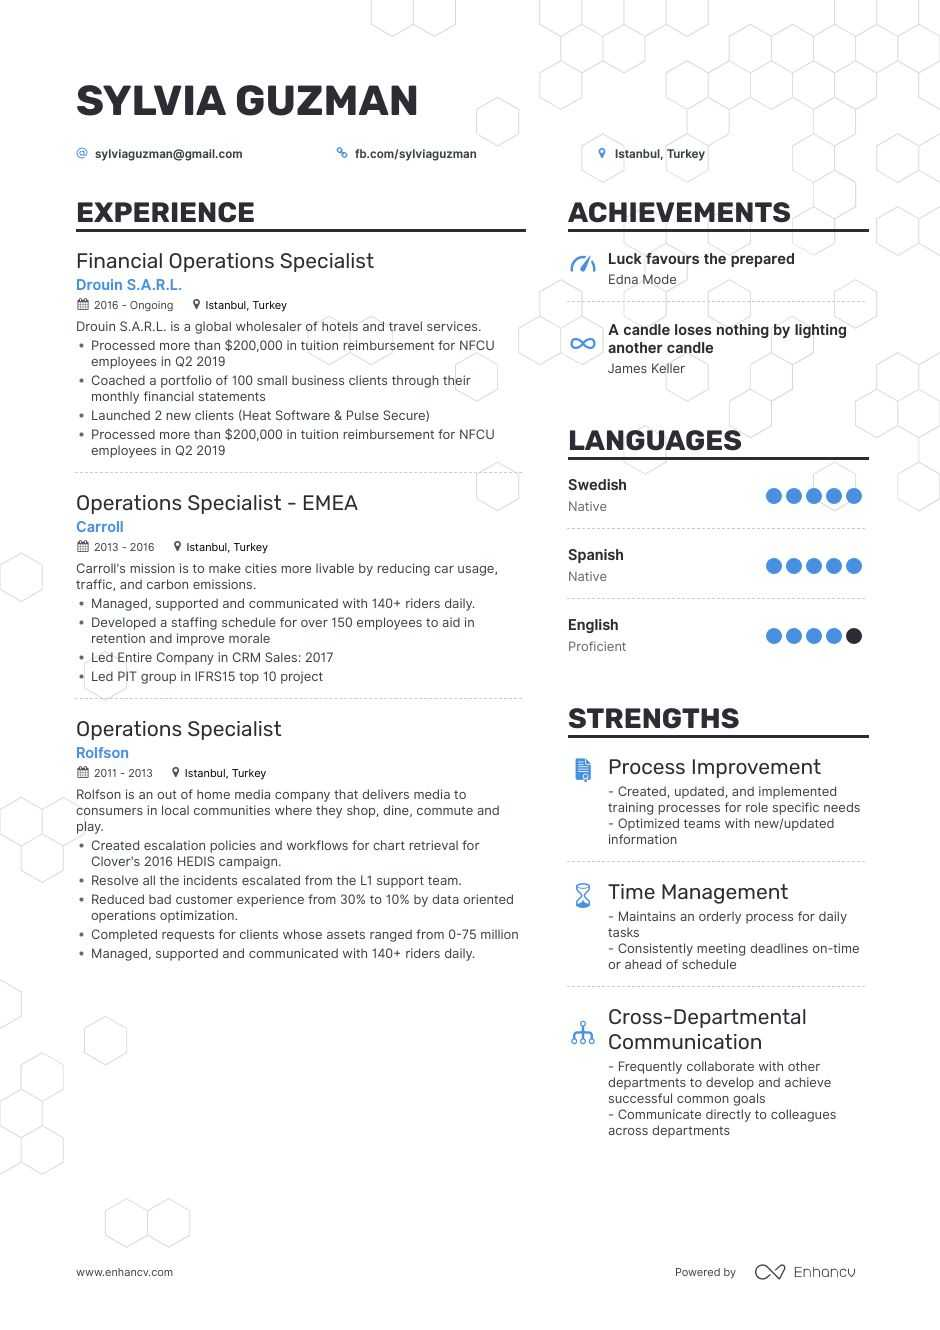 operations specialist resume example for enhancv business technical theatre template Resume Business Operations Specialist Resume